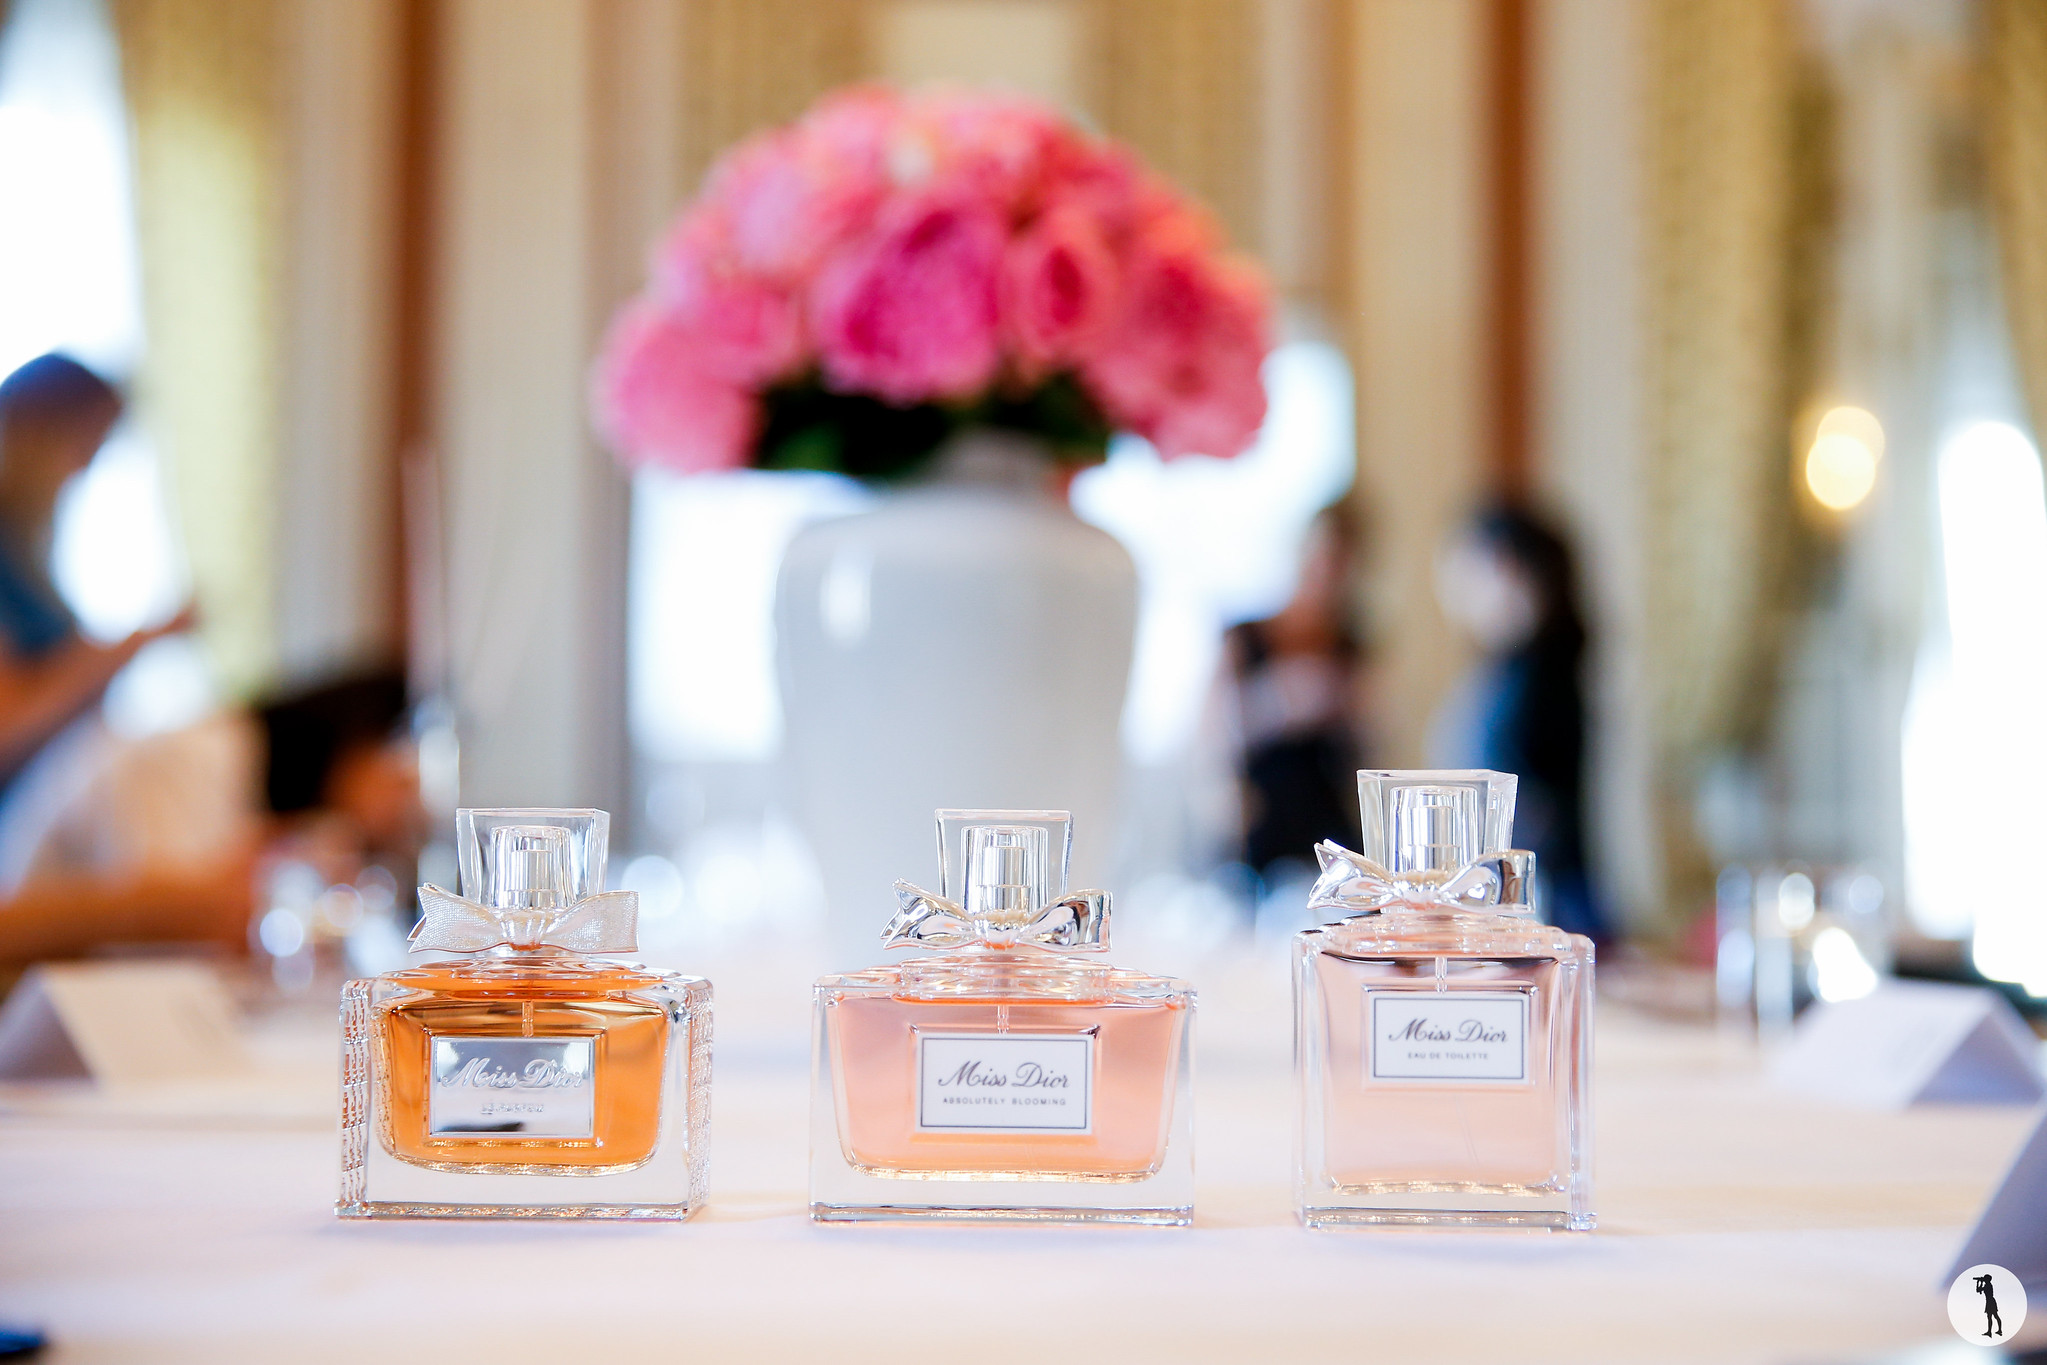 Dior California - Event for bloggers in Biarritz - June 2017